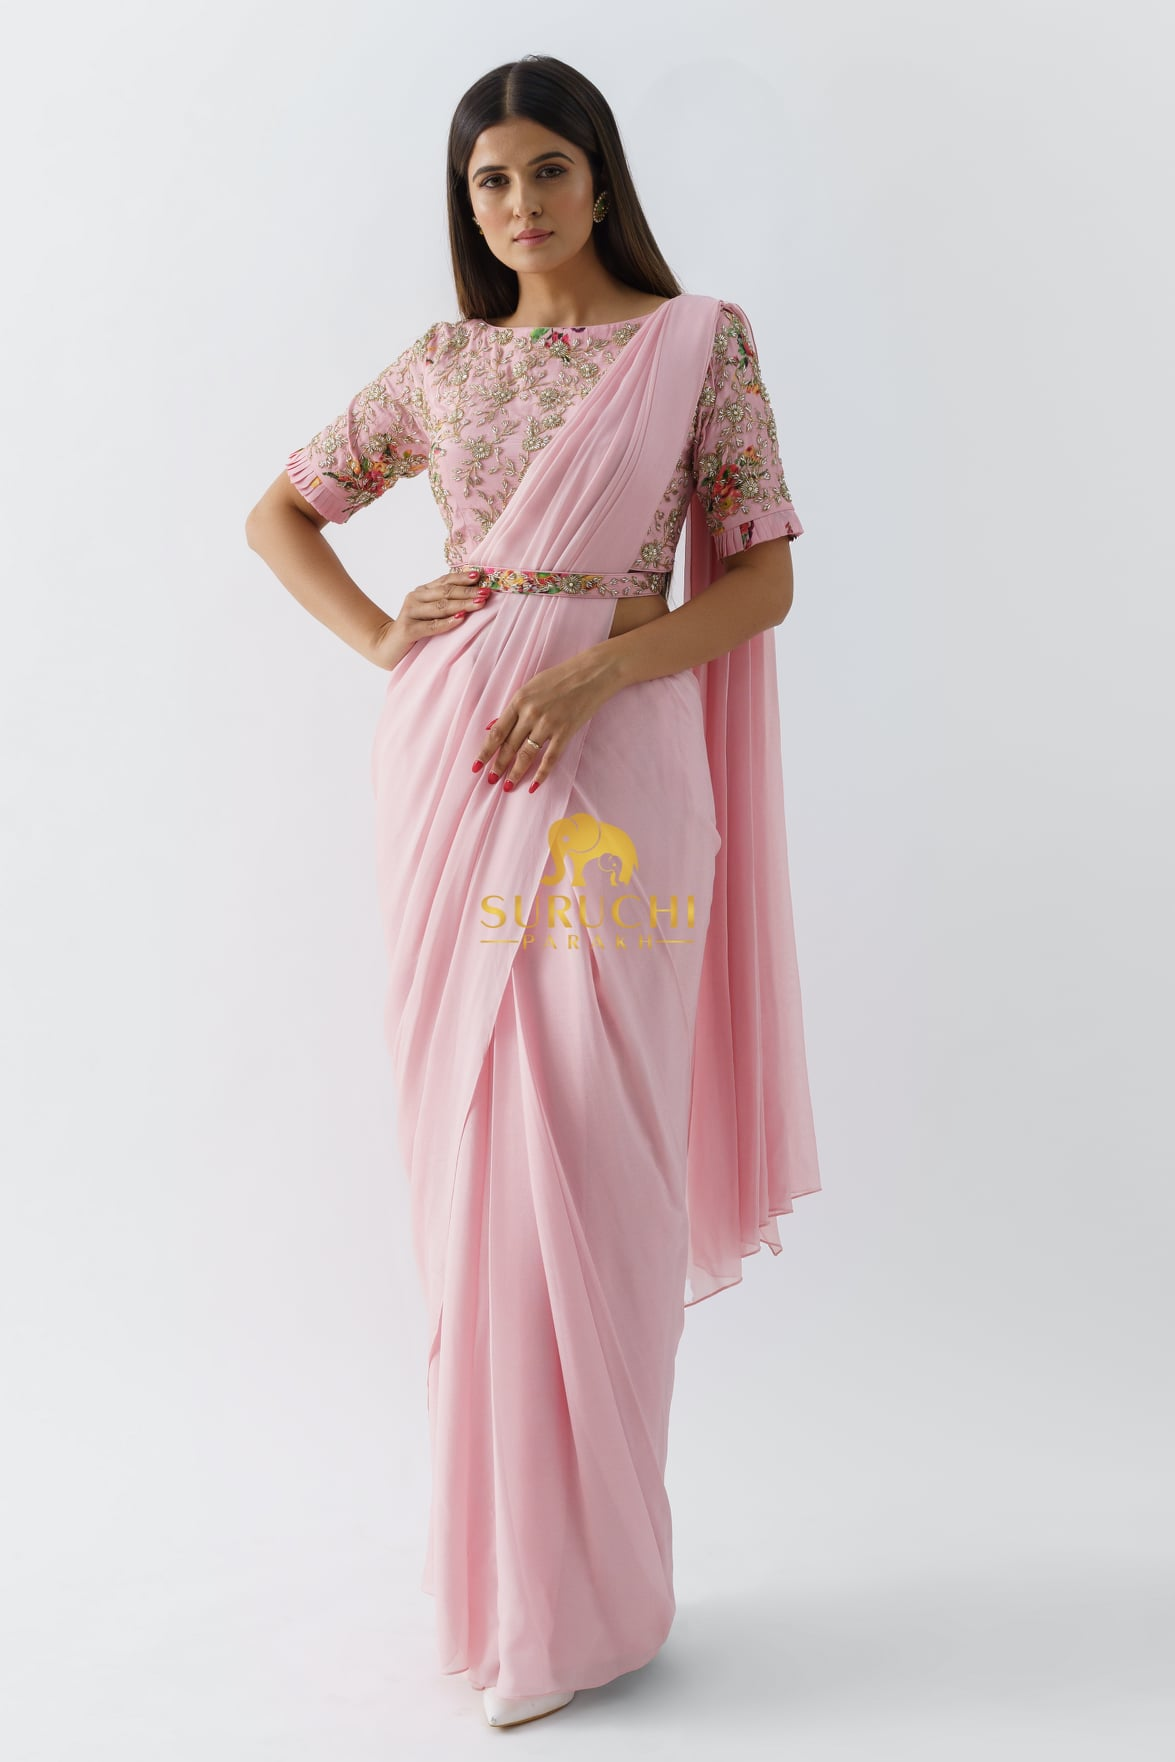 Lovely blush pink color designer saree and boat neck blouse with waist belt. Blouse and waist with floral classy hand embroidery work.  2021-09-21